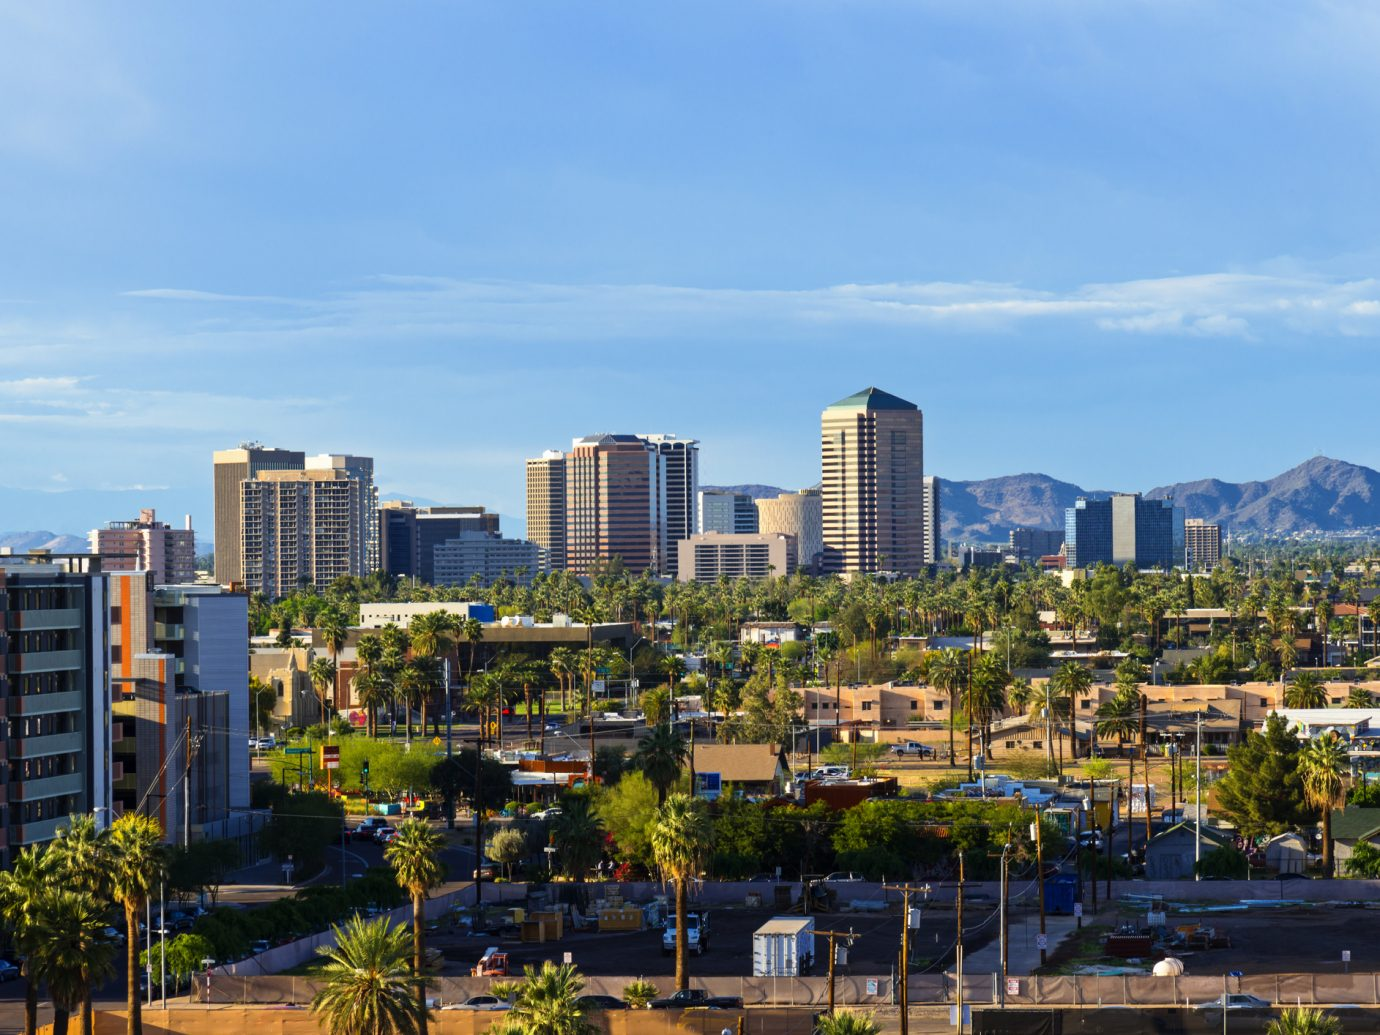 Downtown Scottsdale and suburbs of Phoenix, Arizona